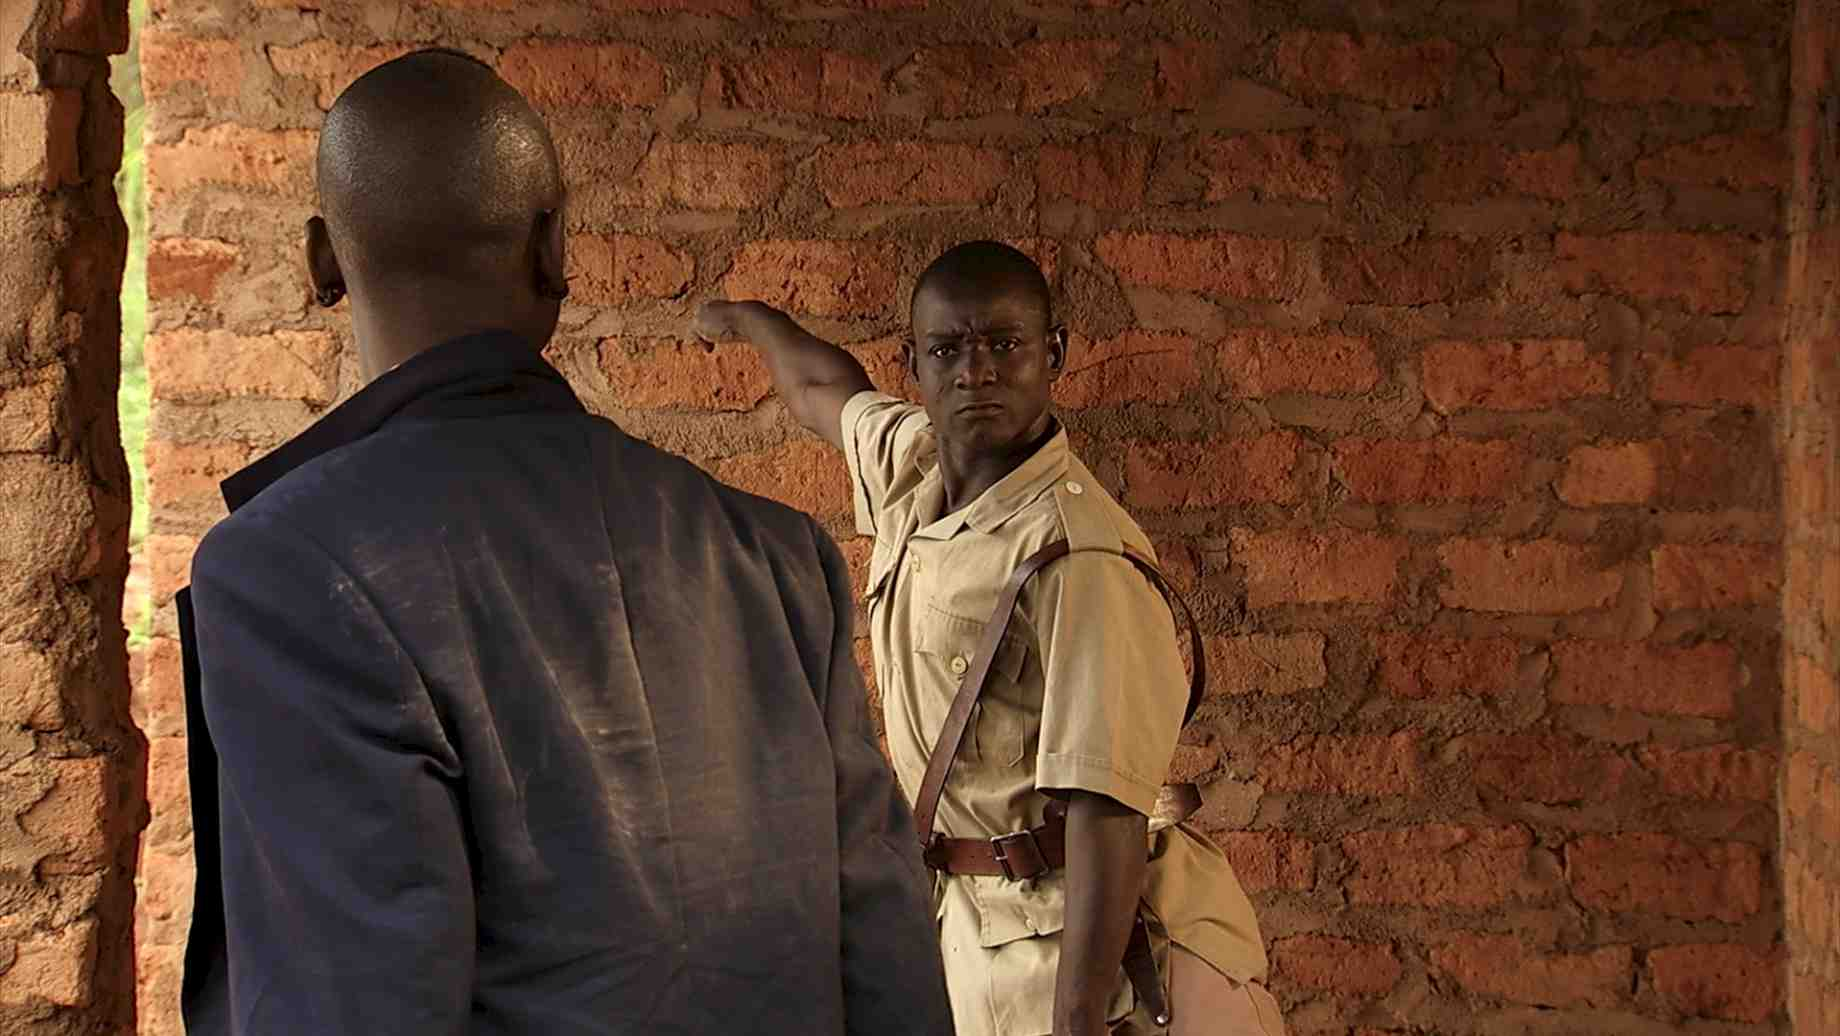 Souleymane Badolo, in NORA, as the policeman who attempts, but fails, to remove young Nora and her brother from their home.